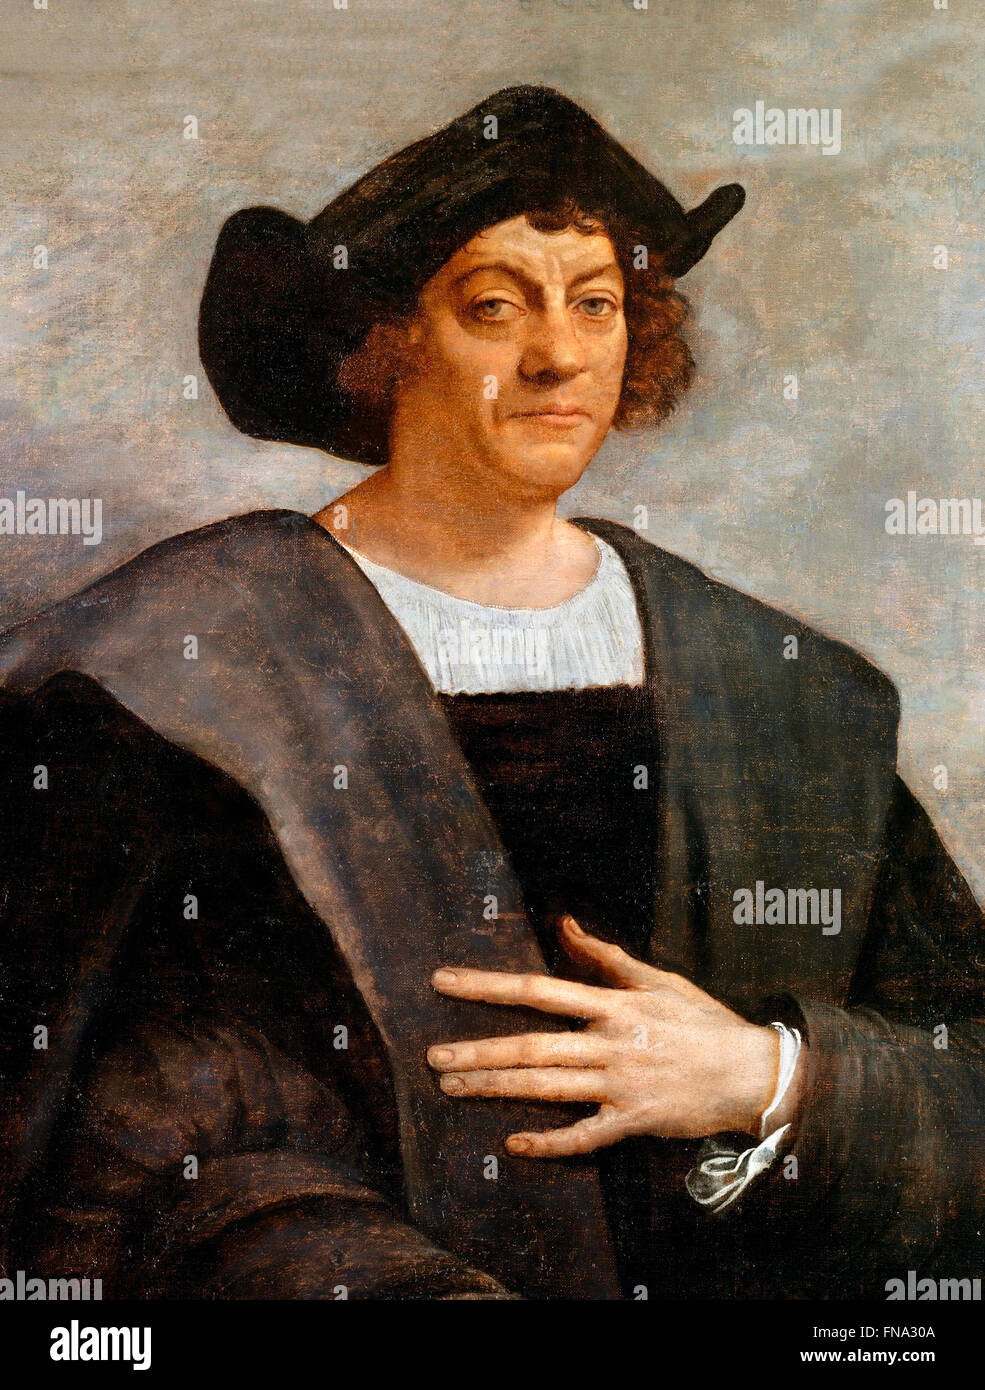 the universal view of christopher columbus Suzan harjo, an american indian, and philip piccigallo, of the sons of italy in america, debate the controversial history of christopher columbus.